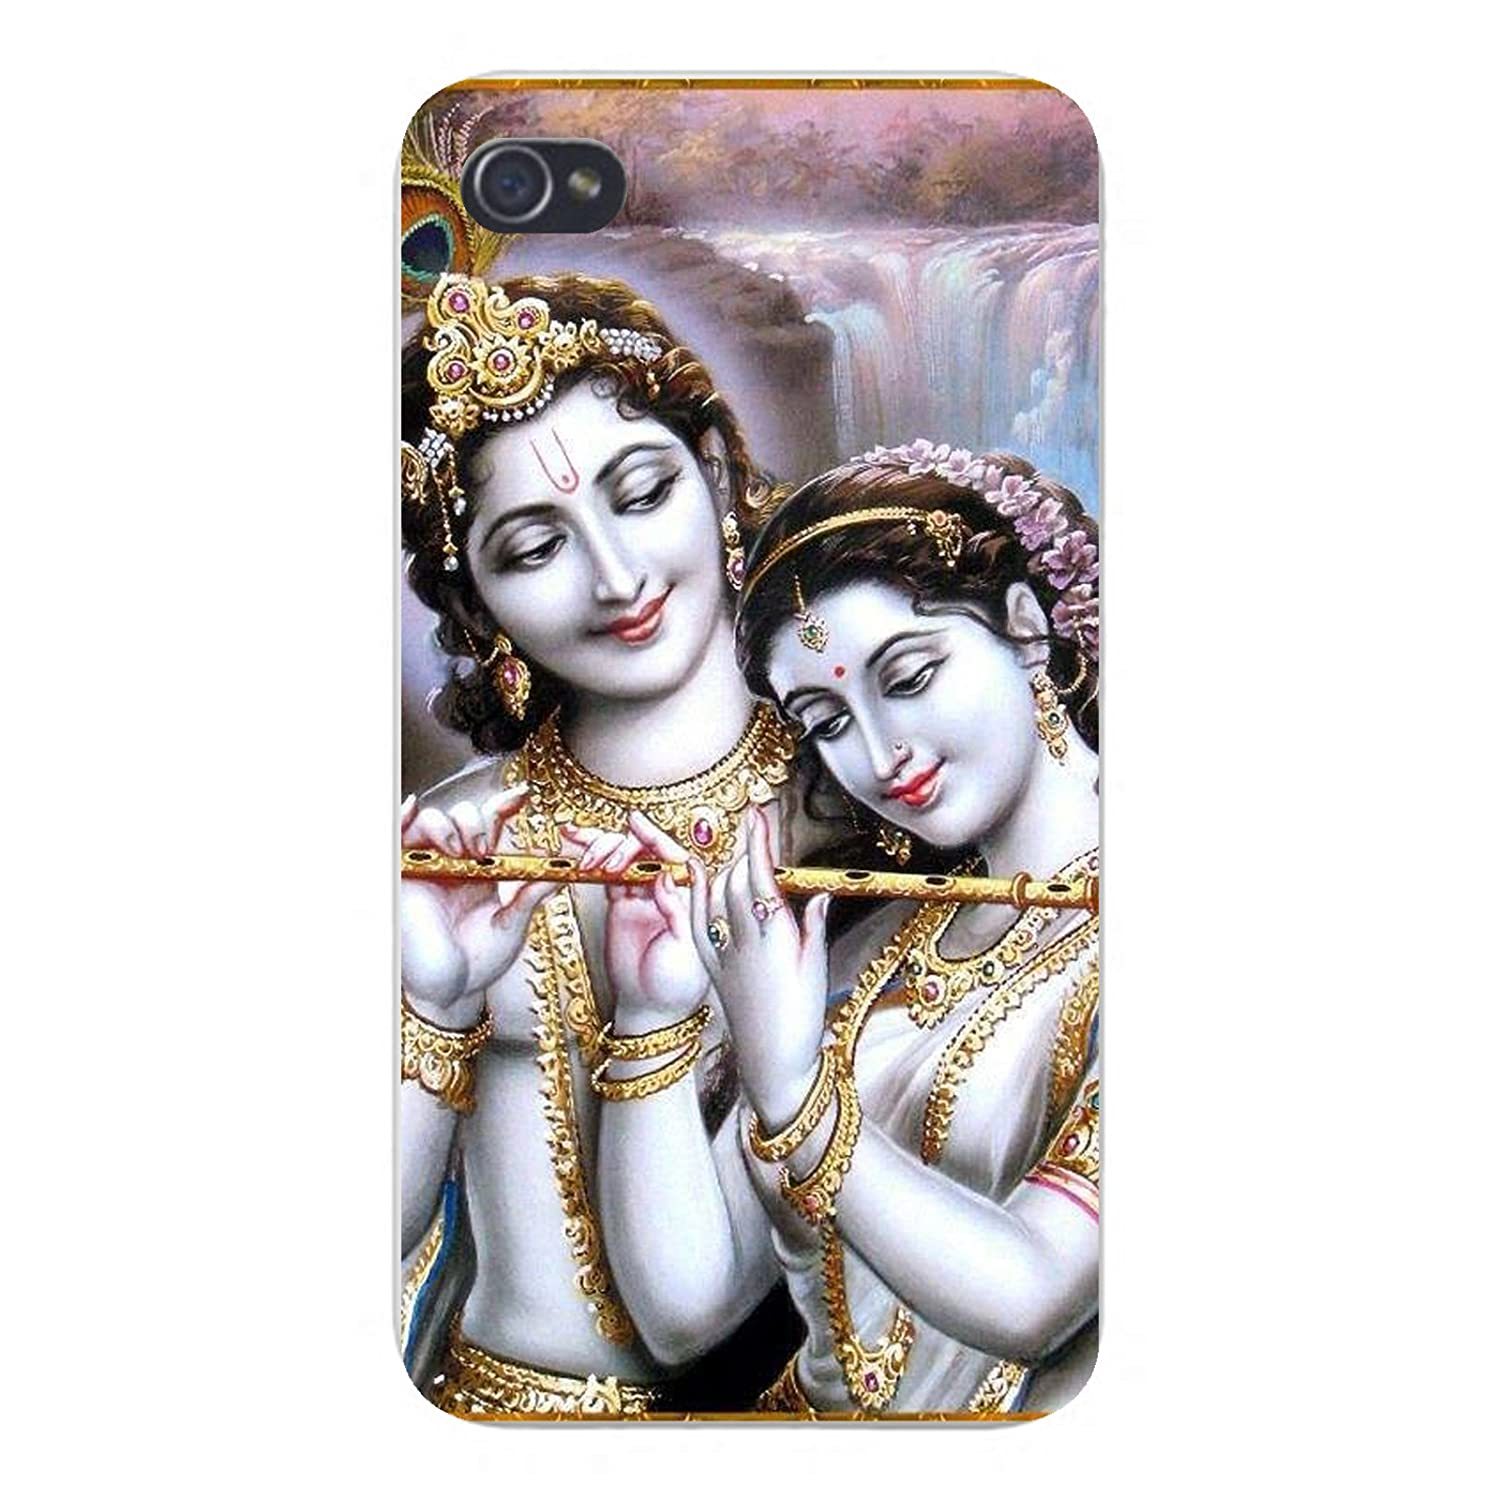 Apple Iphone Custom Case 4 4s Snap on - Lord Radha Krishna Flute Instrument Hindu Deity